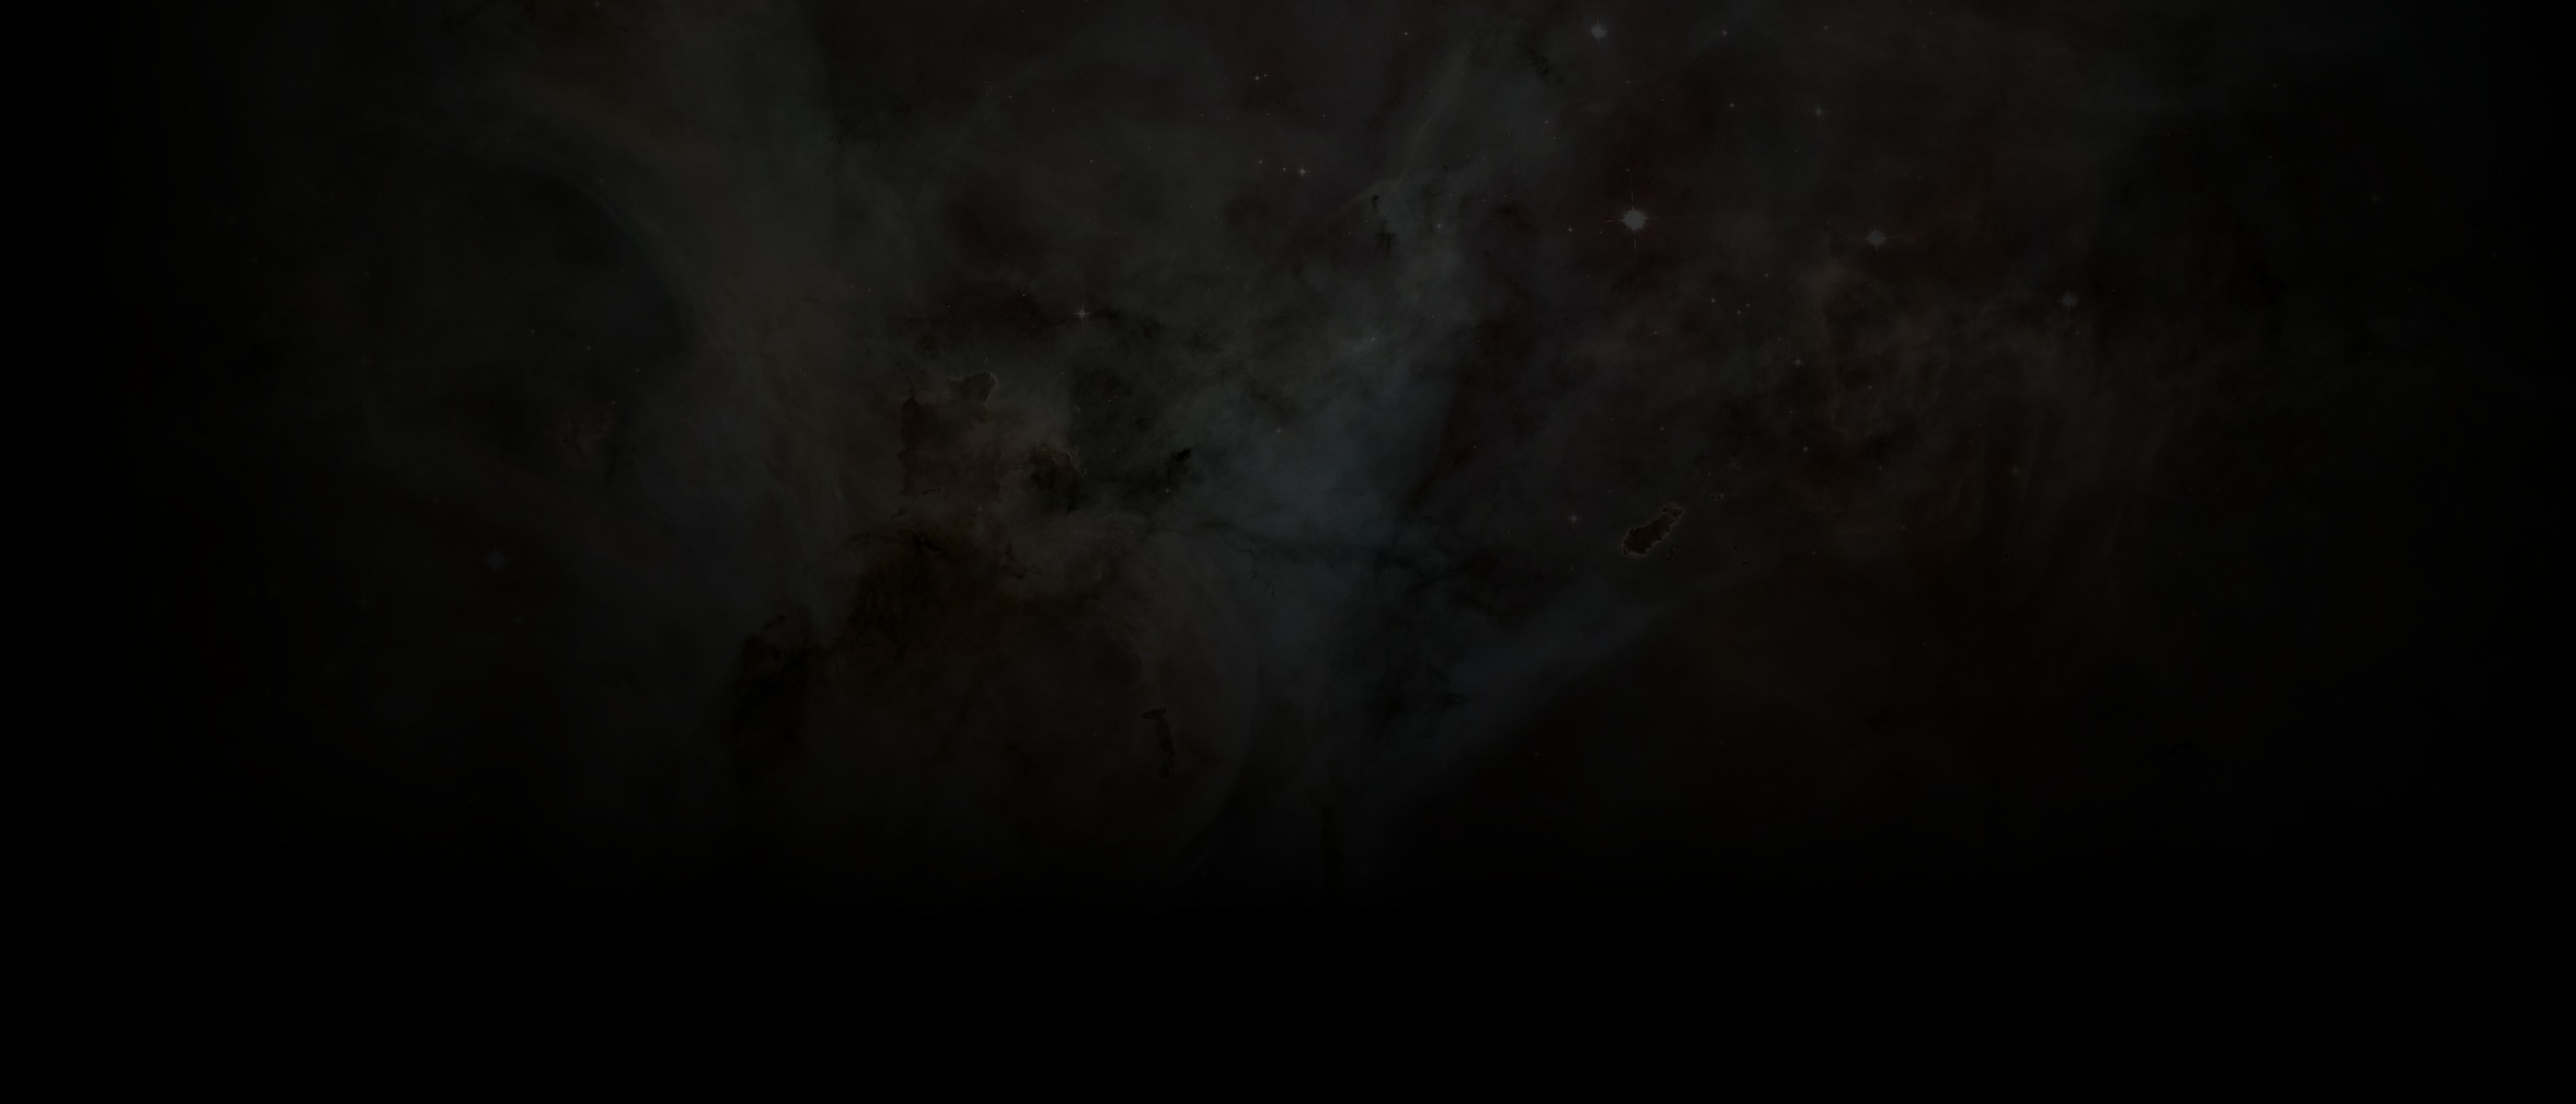 Background image no scroll css - While I M Not Going To Change It Back To The Other One Http Stats Xonotic Org Static Css Img Ground Png I Am Open To Suggestions For Another